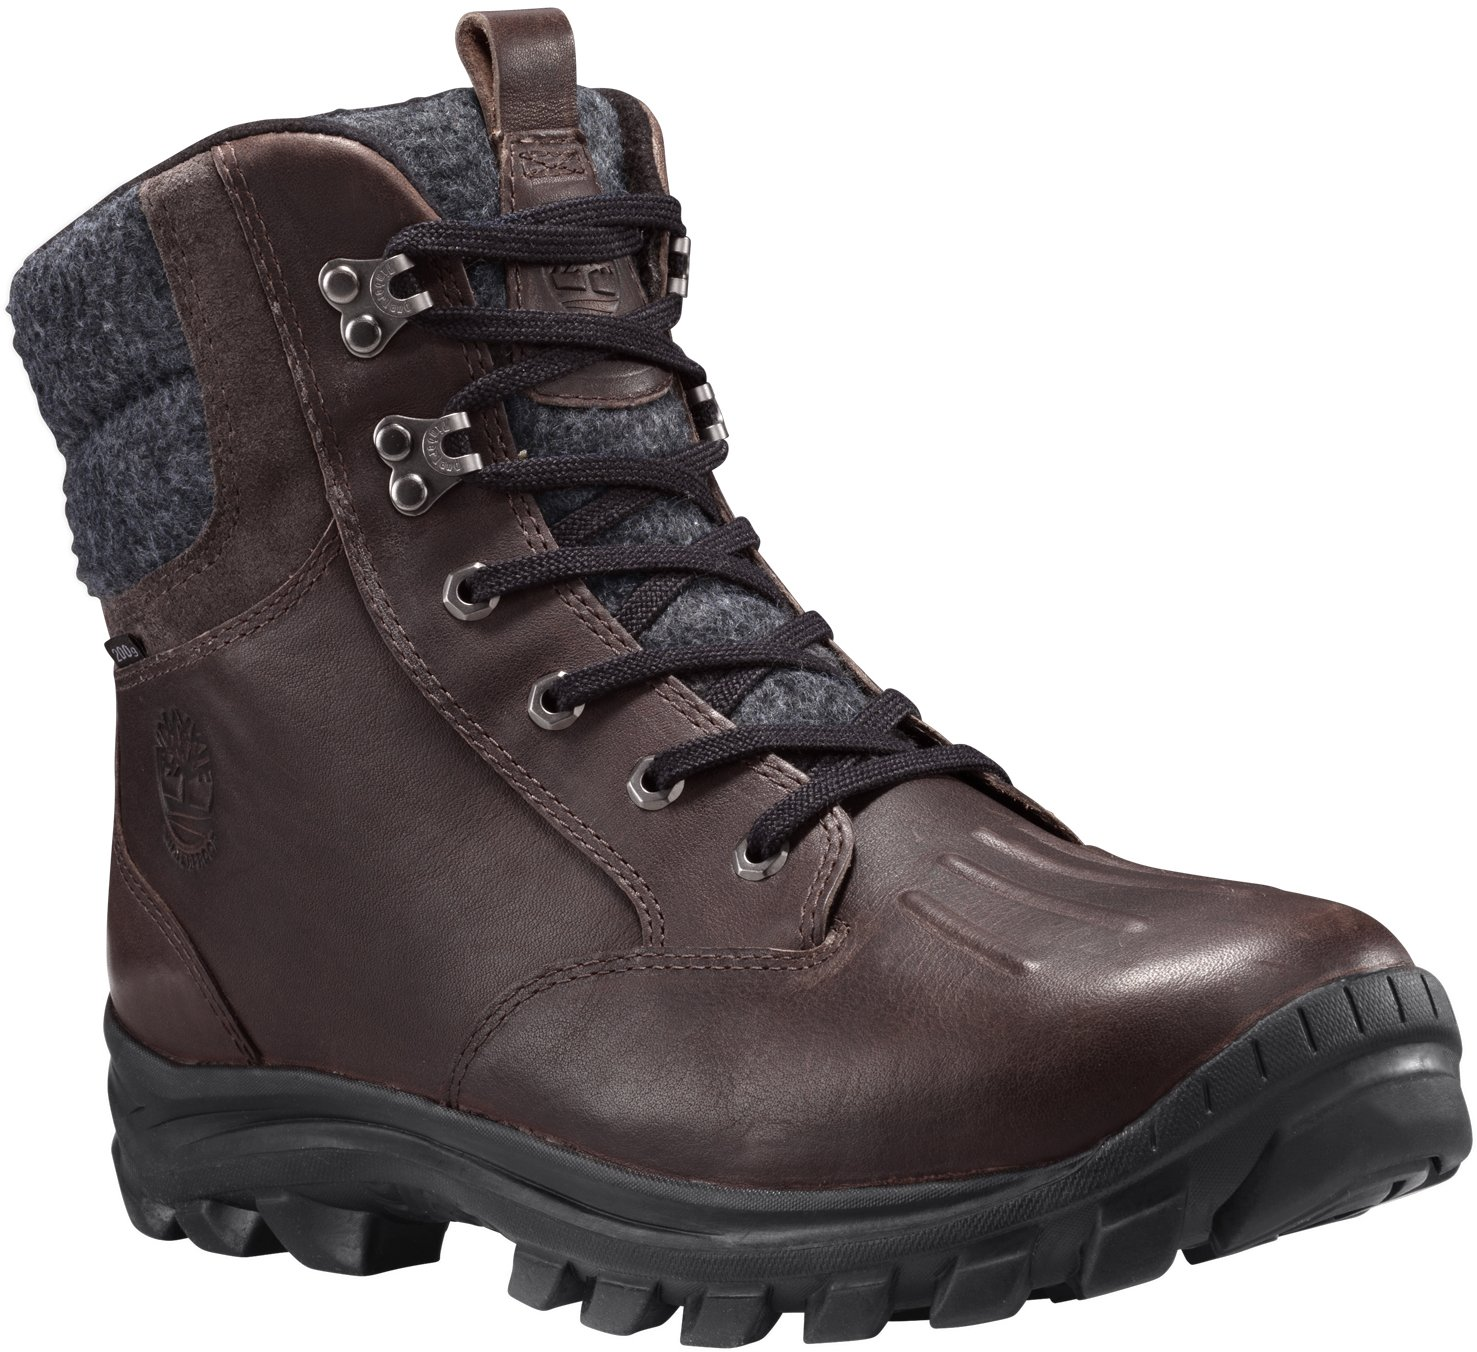 Timberland Men's Chillberg Mid WP Insulated Snow Boot, Mulch TBL Forty Full Grain, 10.5 M US